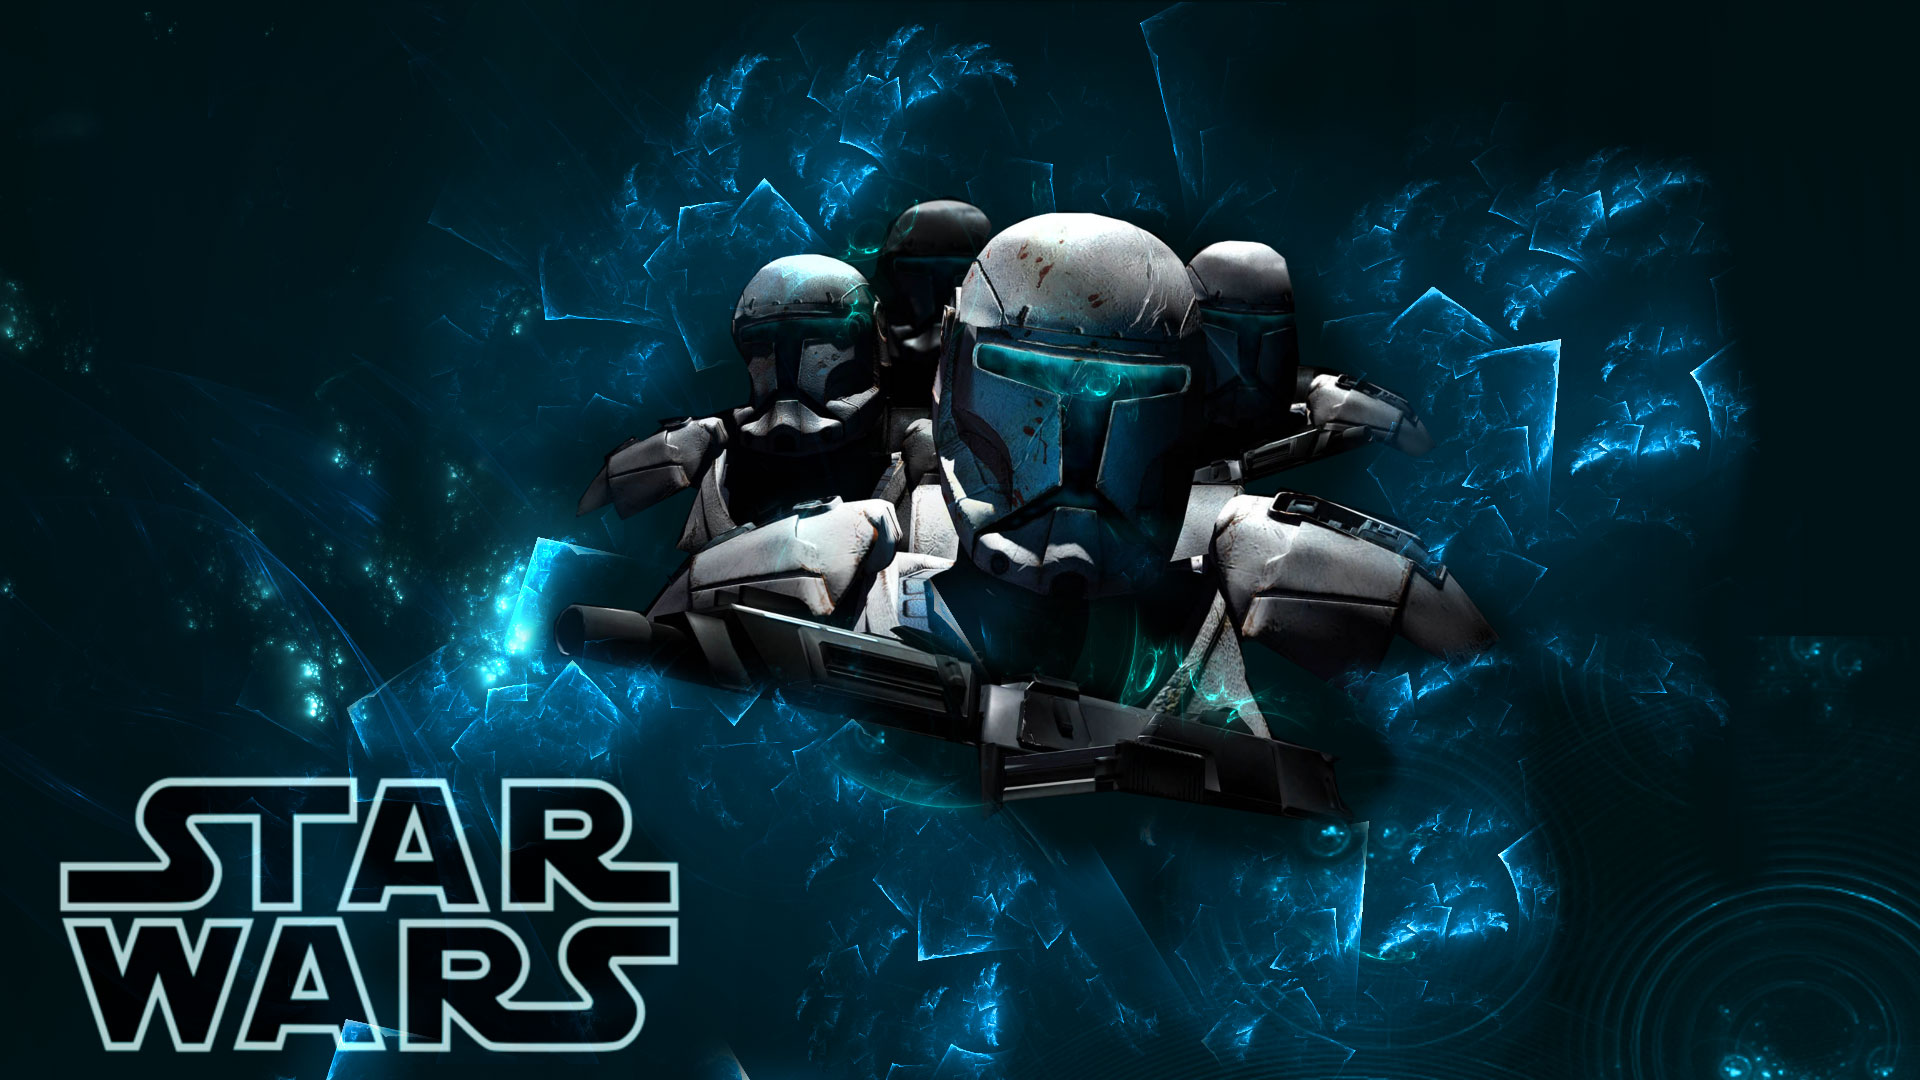 Free Download Stormtrooper Star Wars Wallpaper 6 1920x1080 For